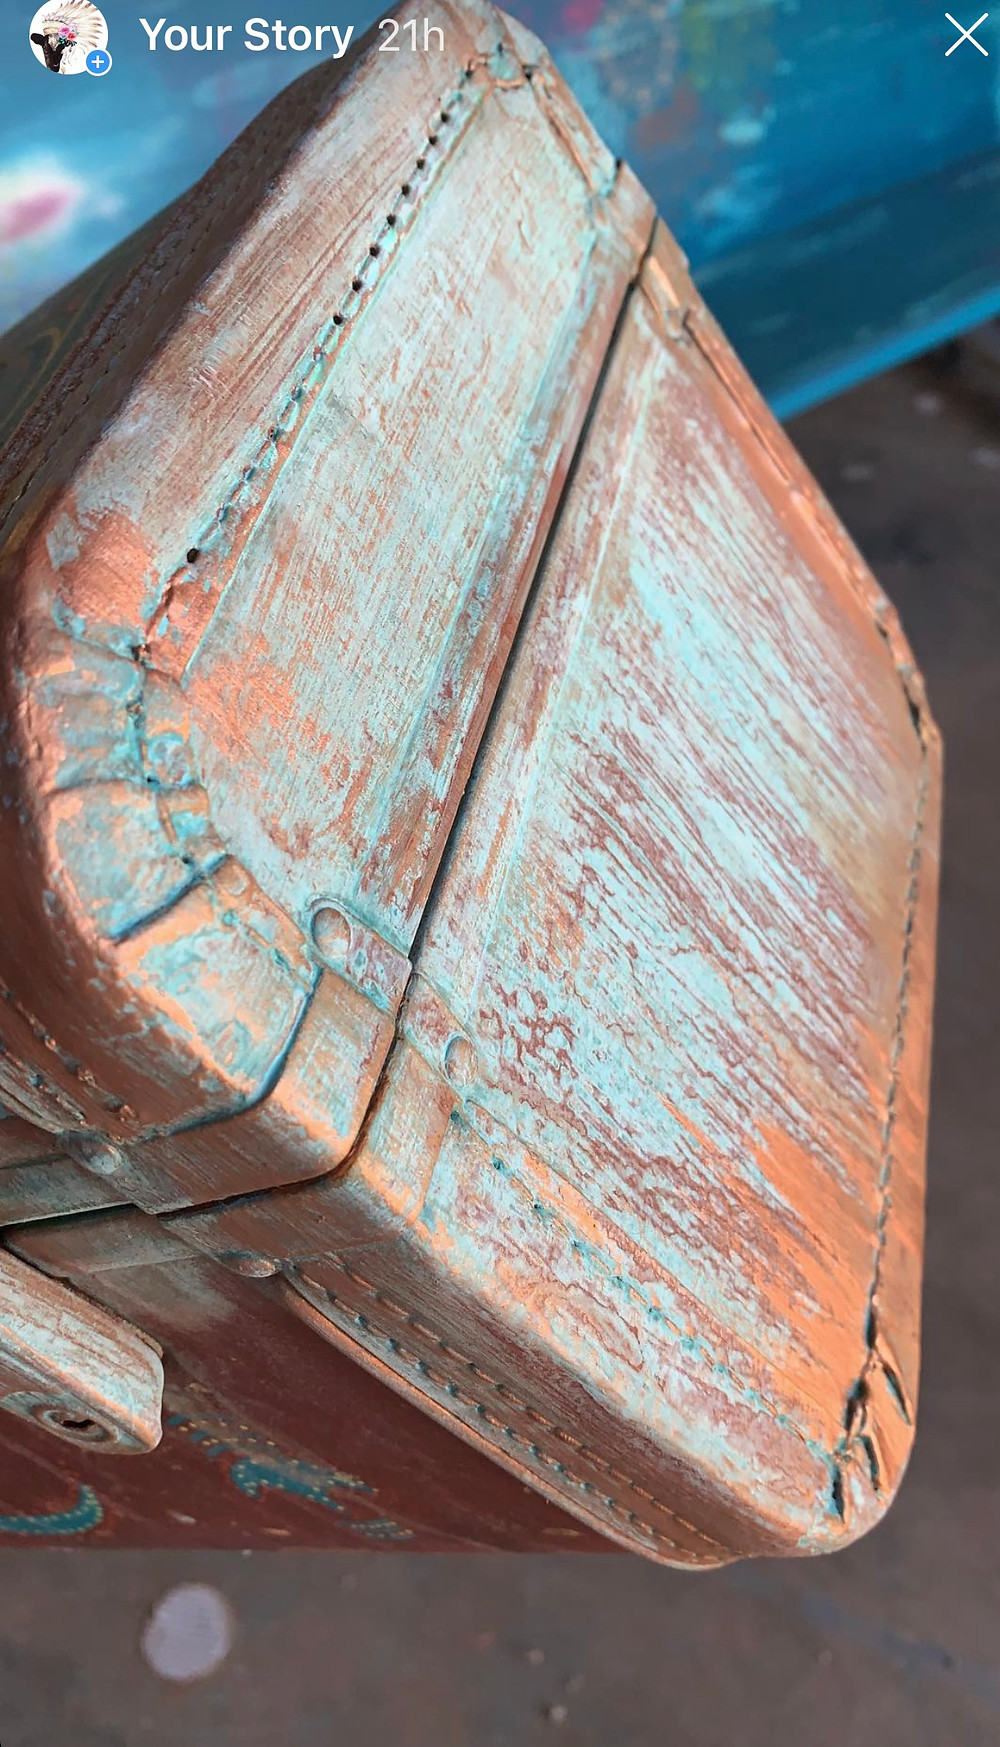 patina paint finish